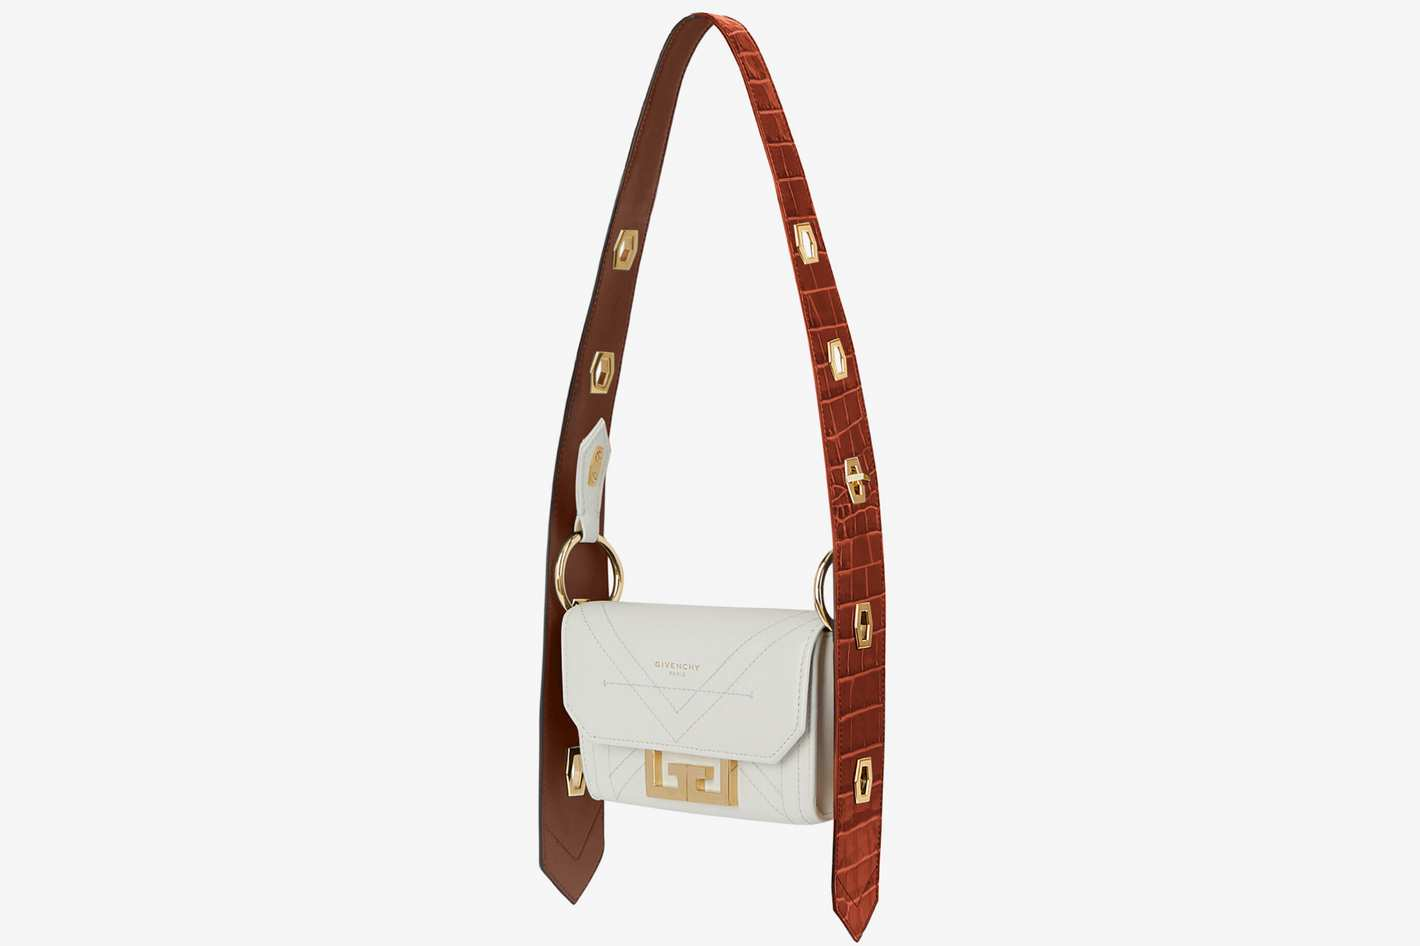 Givenchy Nano Eden Bag in Two-Tone Leather